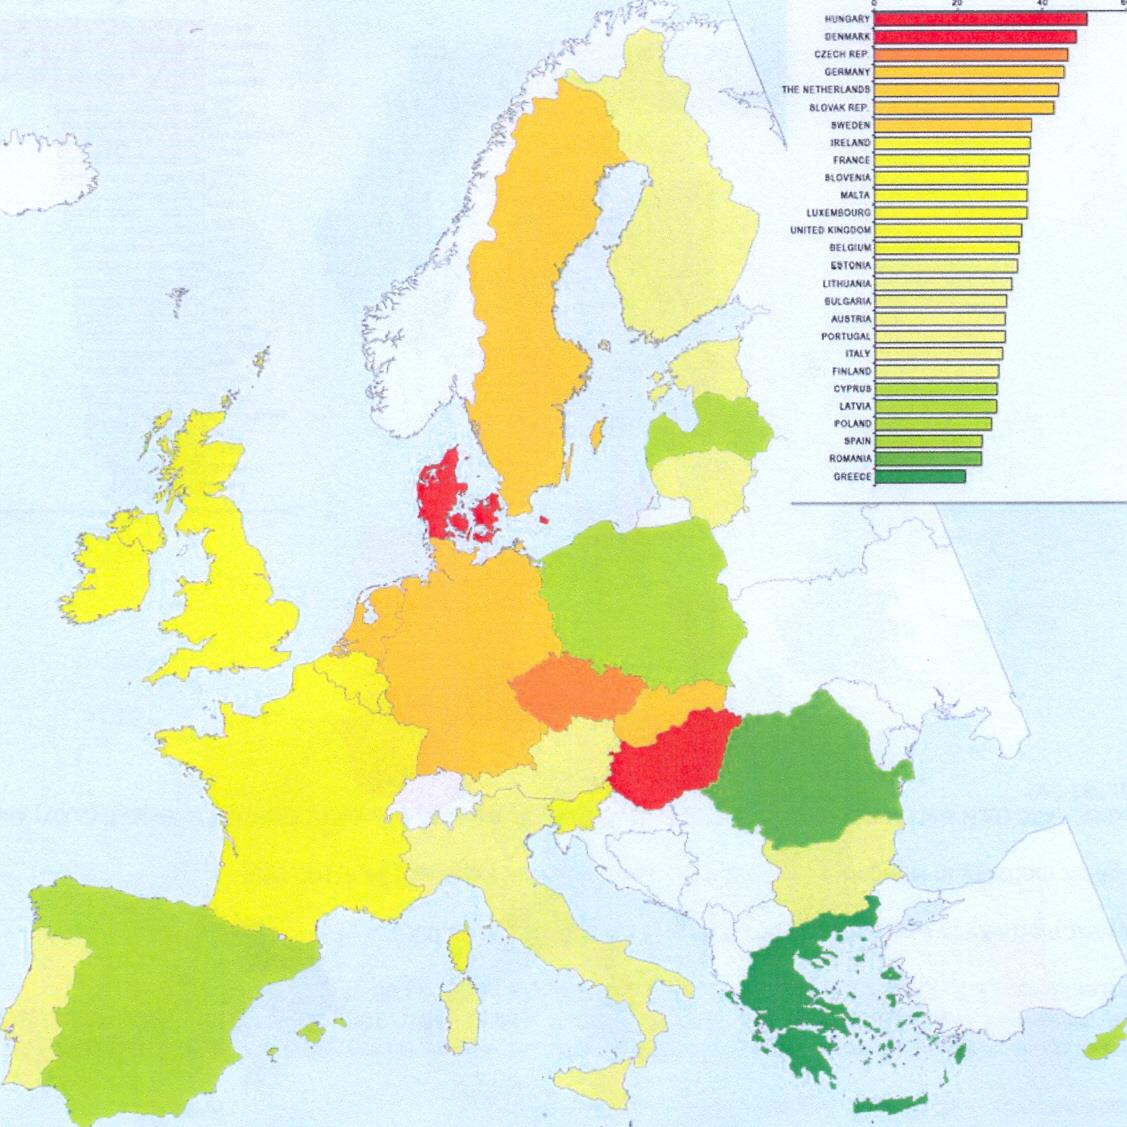 Colorectal cancer incidence in women in the EU Member